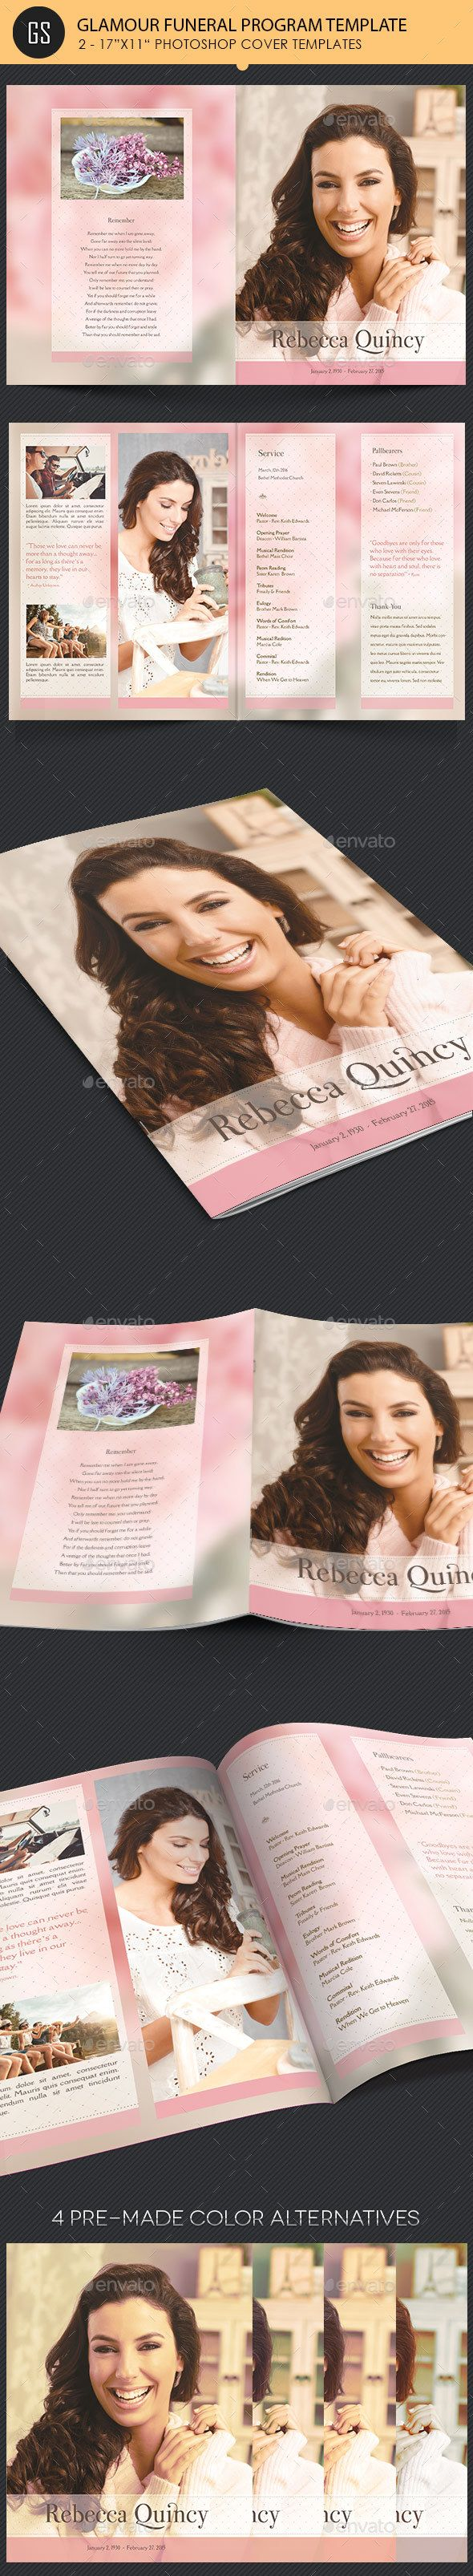 Glamour Funeral Program Large Template  Program Template Funeral